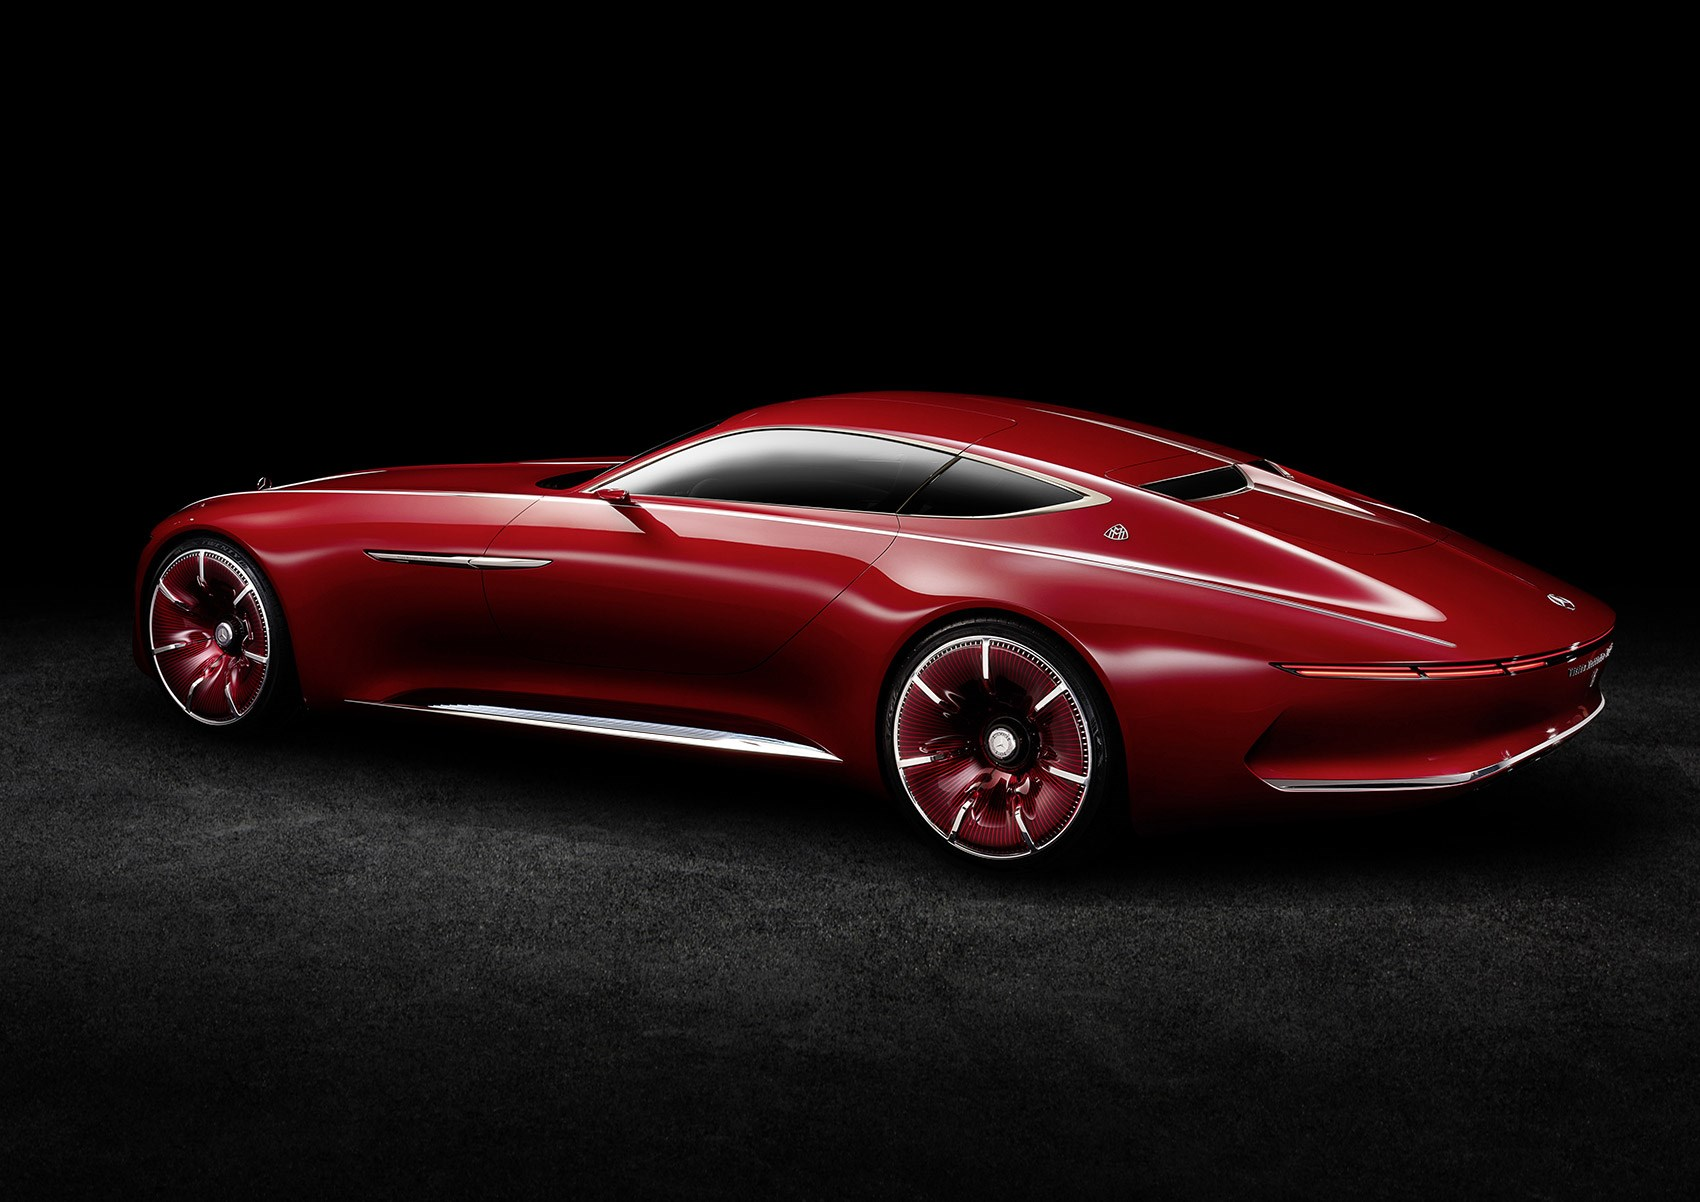 Vision mercedes maybach 6 news photos car magazine for Mercedes benz maybach 6 price